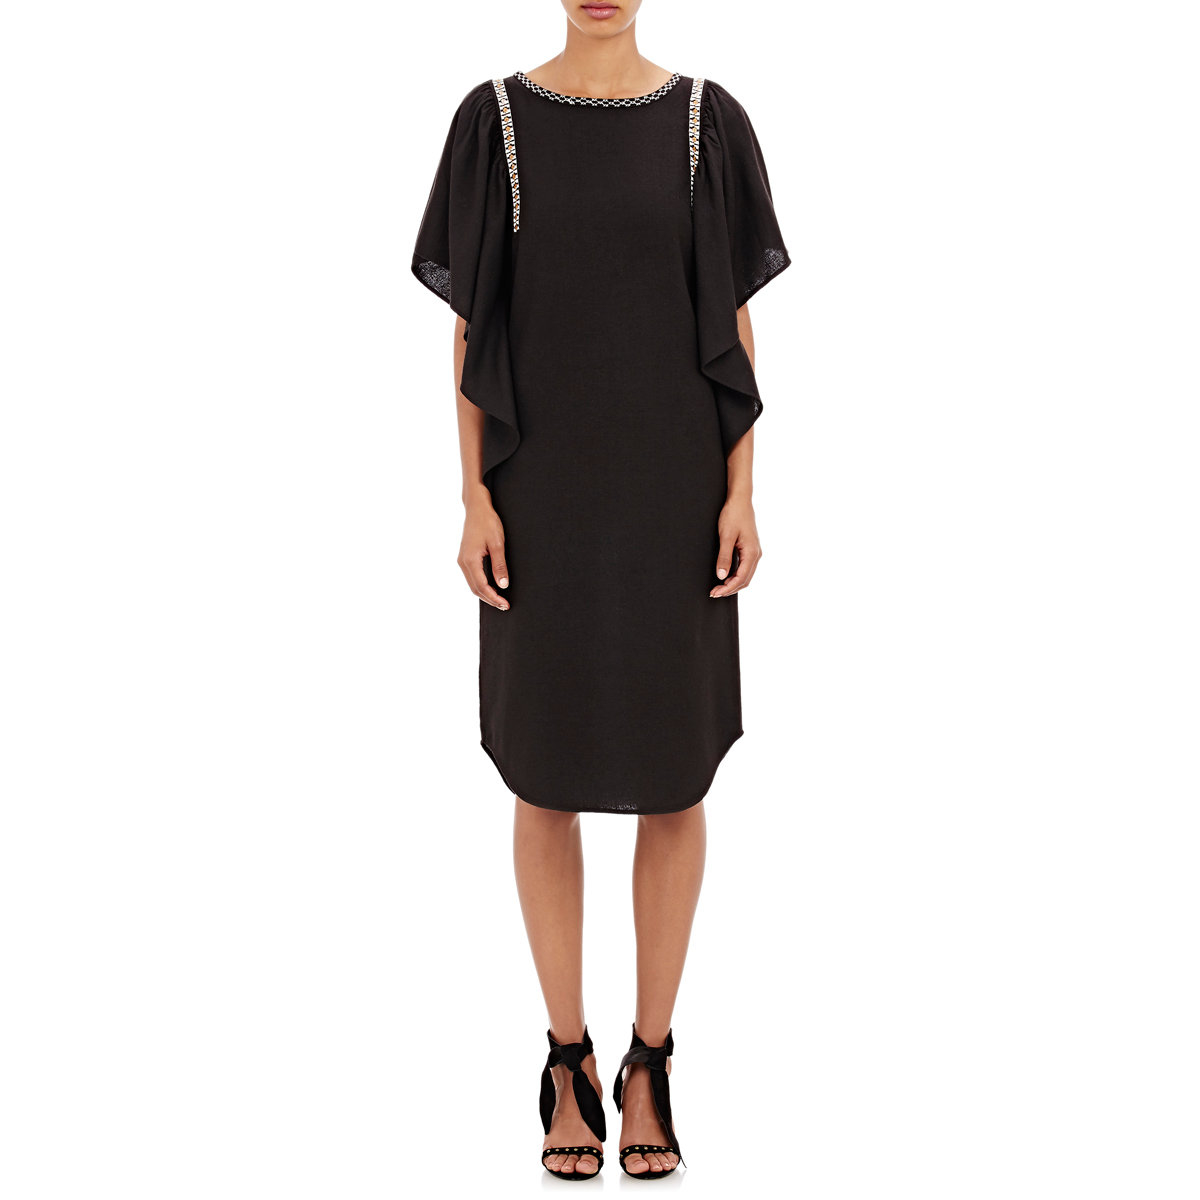 Ulla johnson Women's Betti Tunic Dress in Black | Lyst